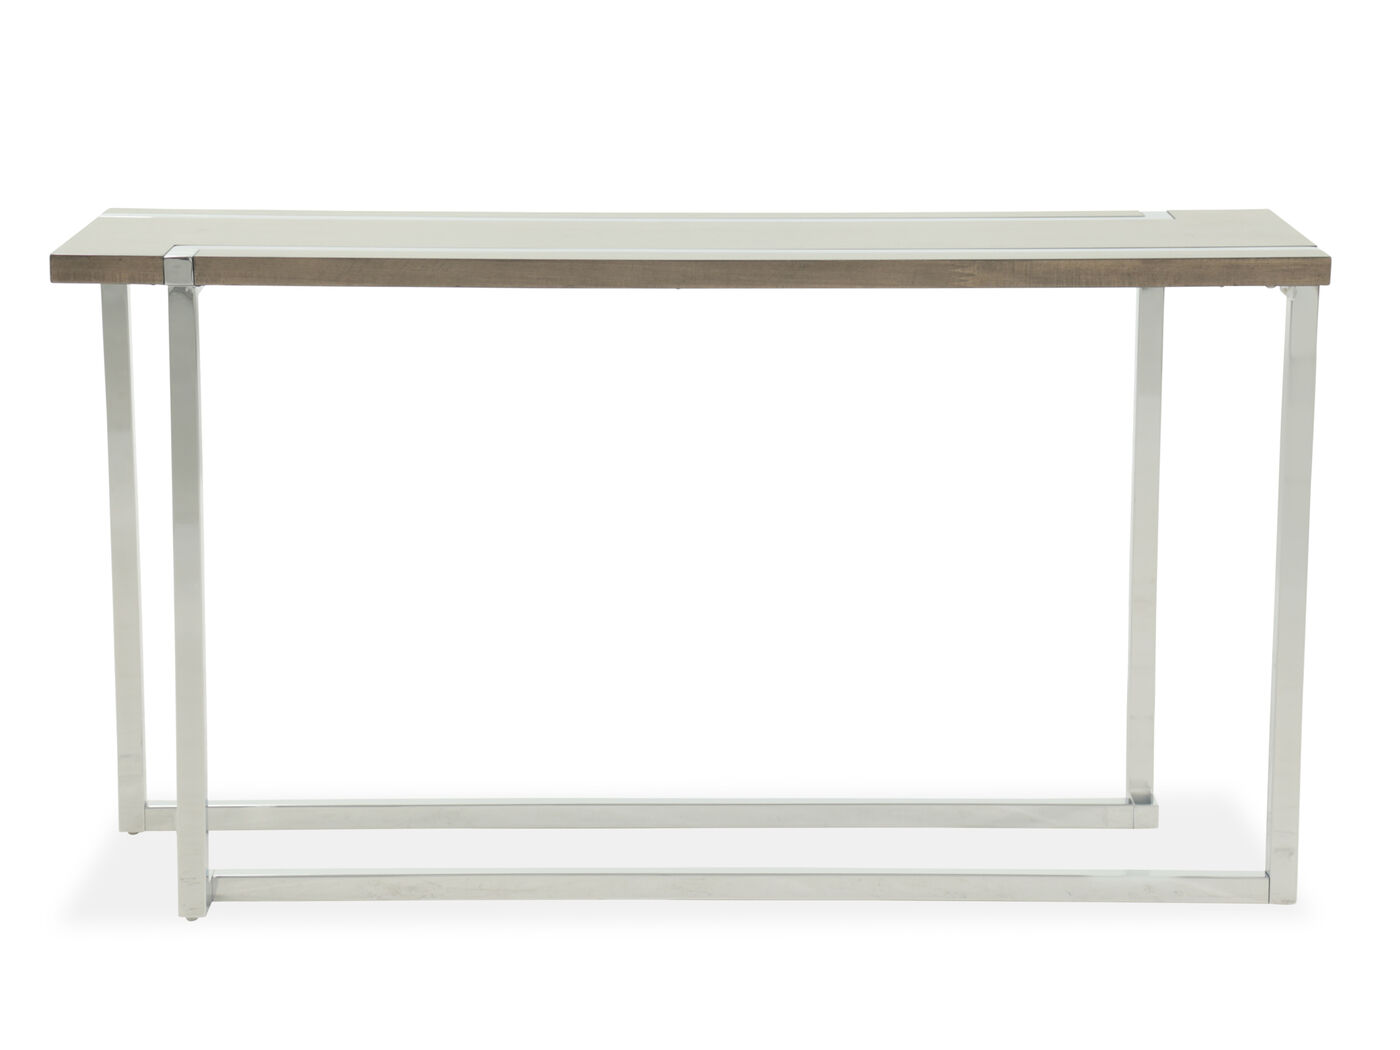 L Shaped Base Transitional Sofa Table In Gray Mathis Brothers  ~ Transitional Sofa Tables